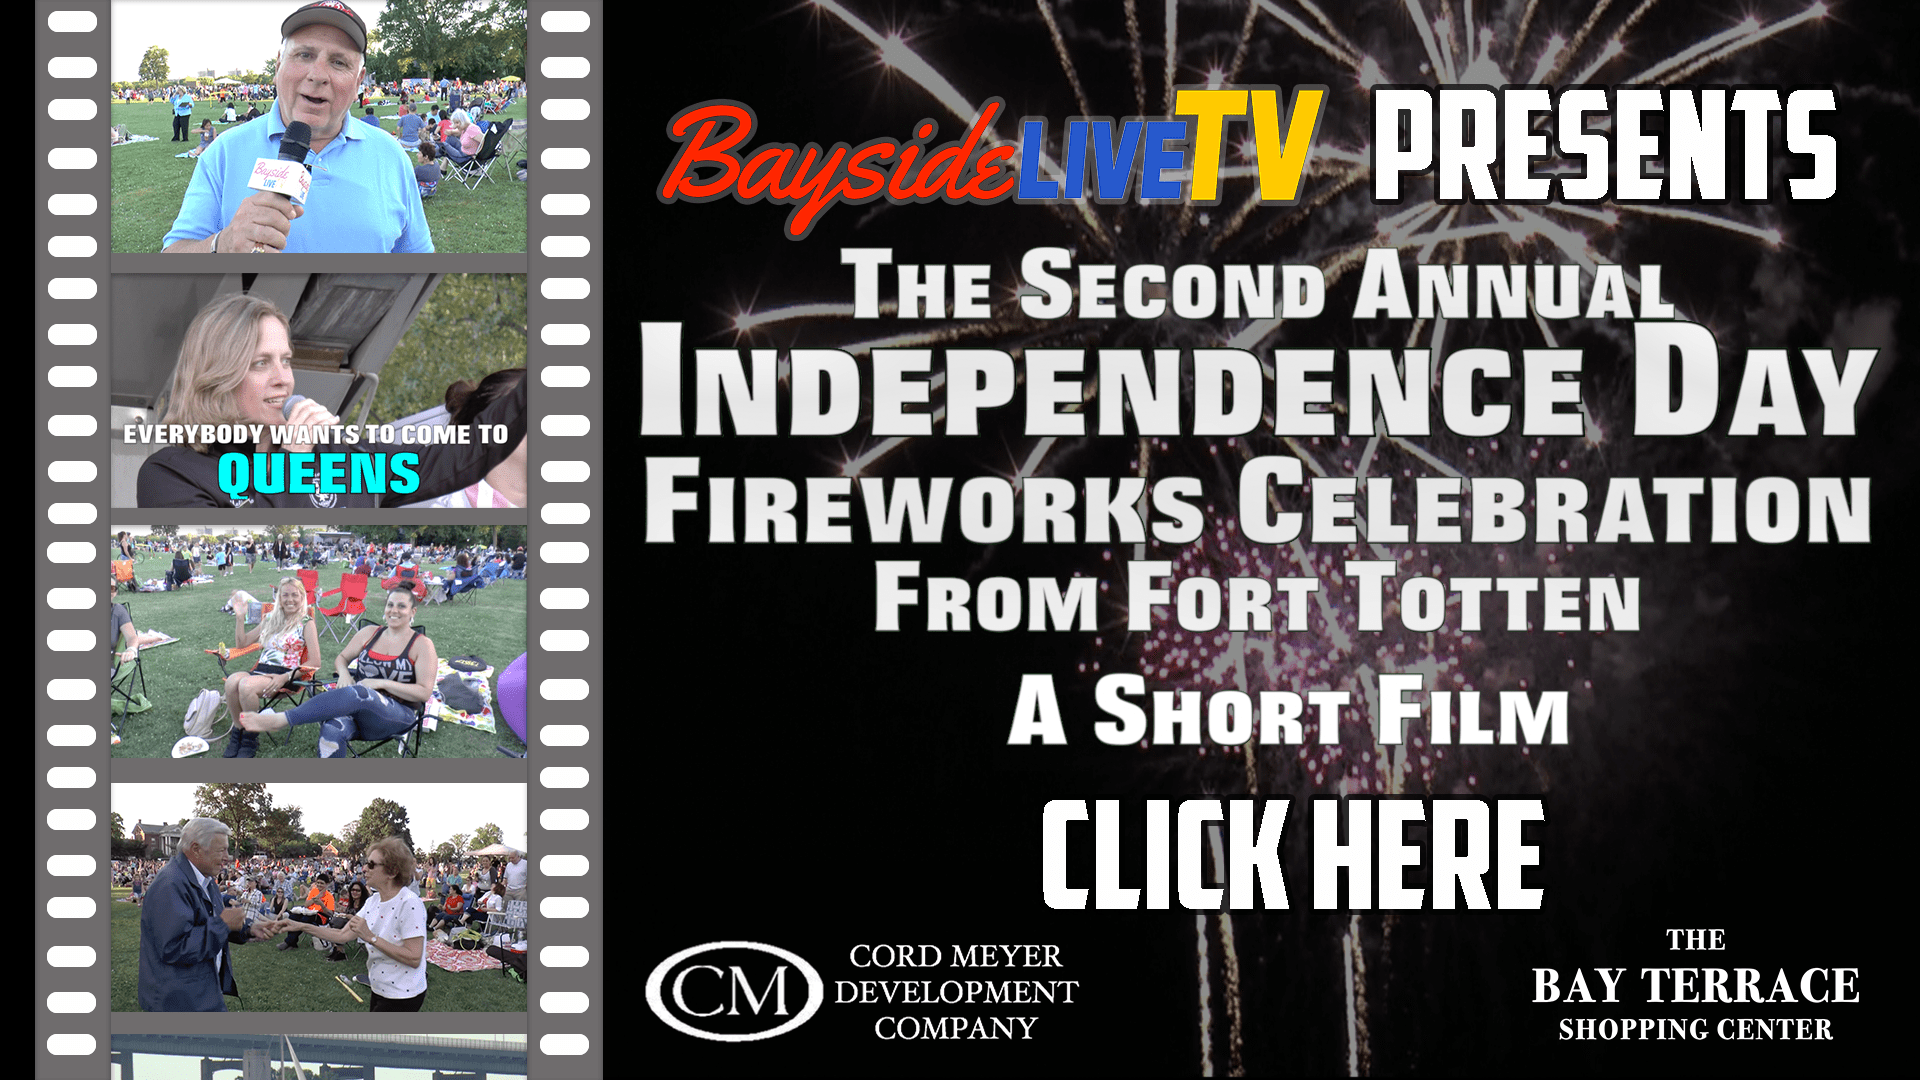 A Bayside Live TV Special Feature Event: The 2nd Annual Independence Day Fireworks Celebration from Fort Totten – A Short Film